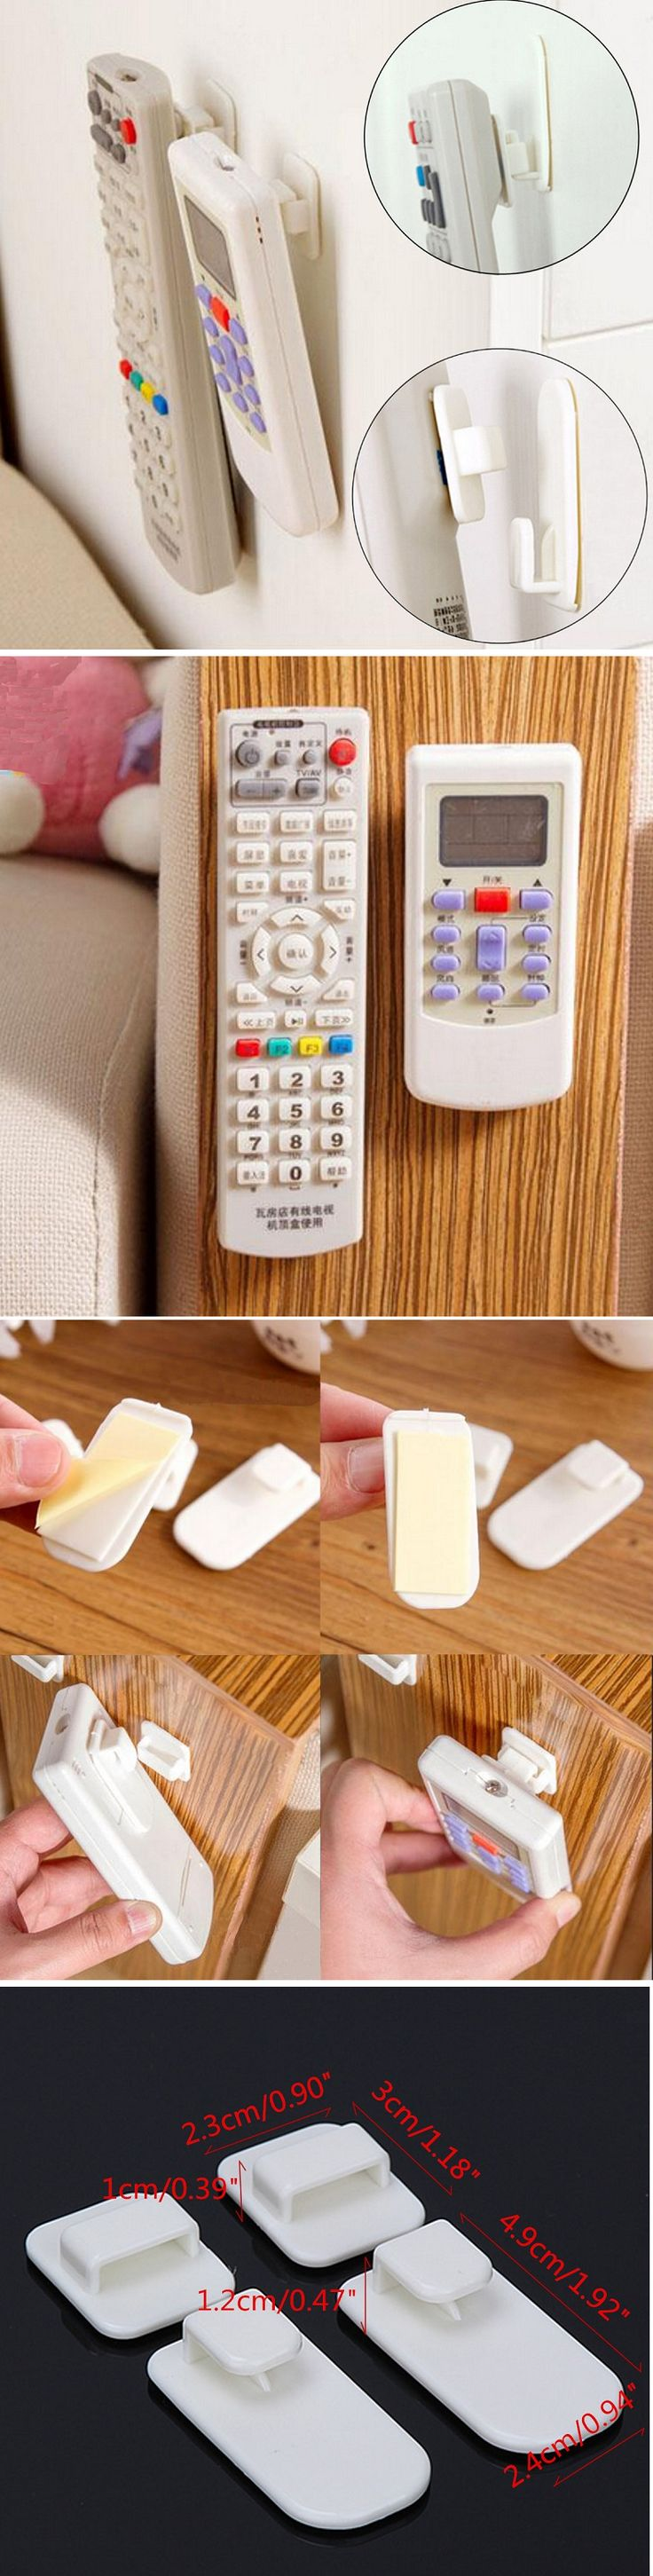 US$2.95  2 Set TV Remote Control Air Conditioning Sticky Hook Self Adhesive Strong Hanger Holder Wall Sensor